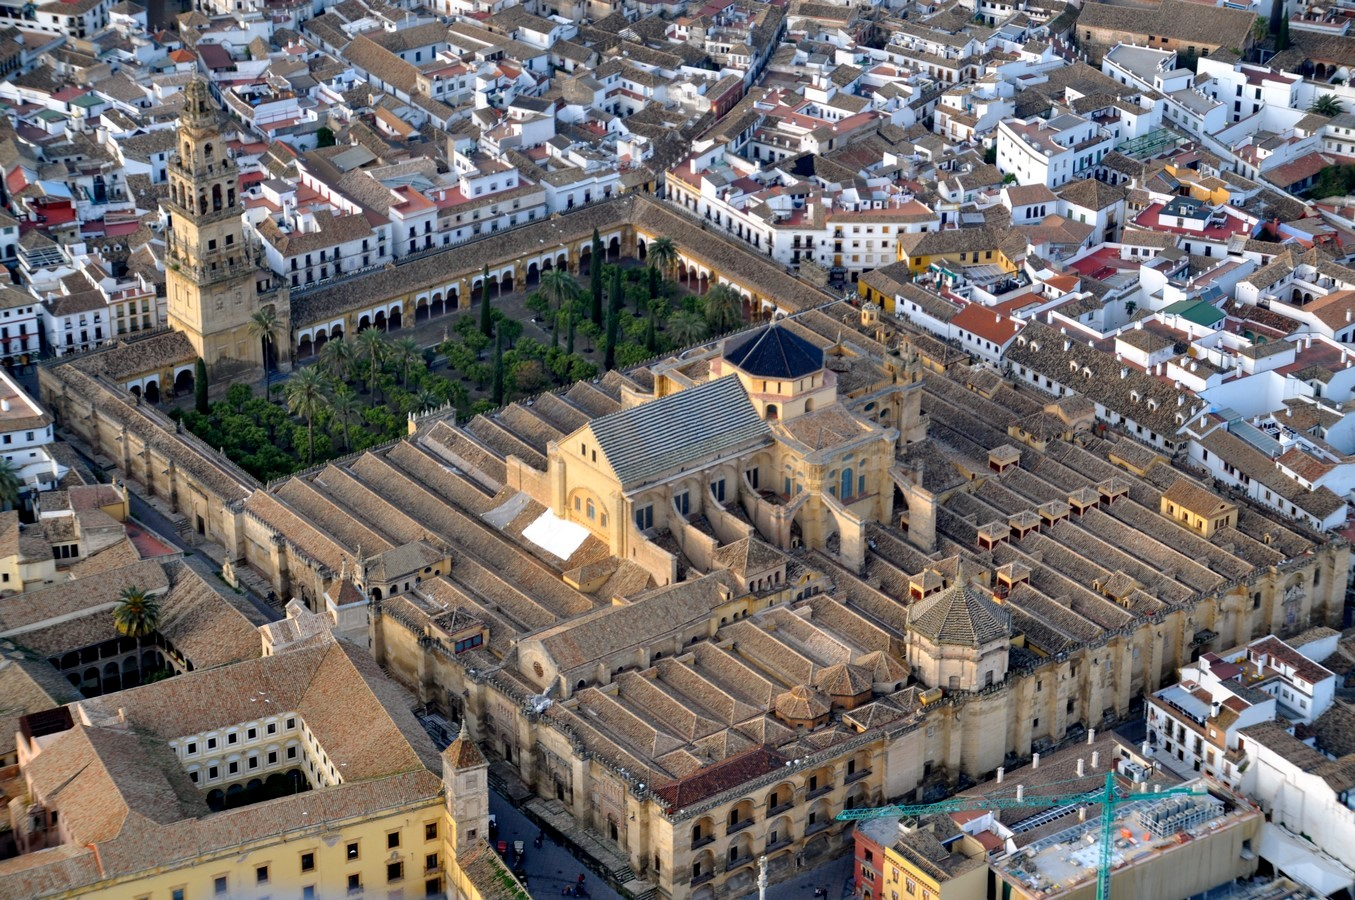 THE GREAT MOSQUE OF CORDOBA - Sheet1